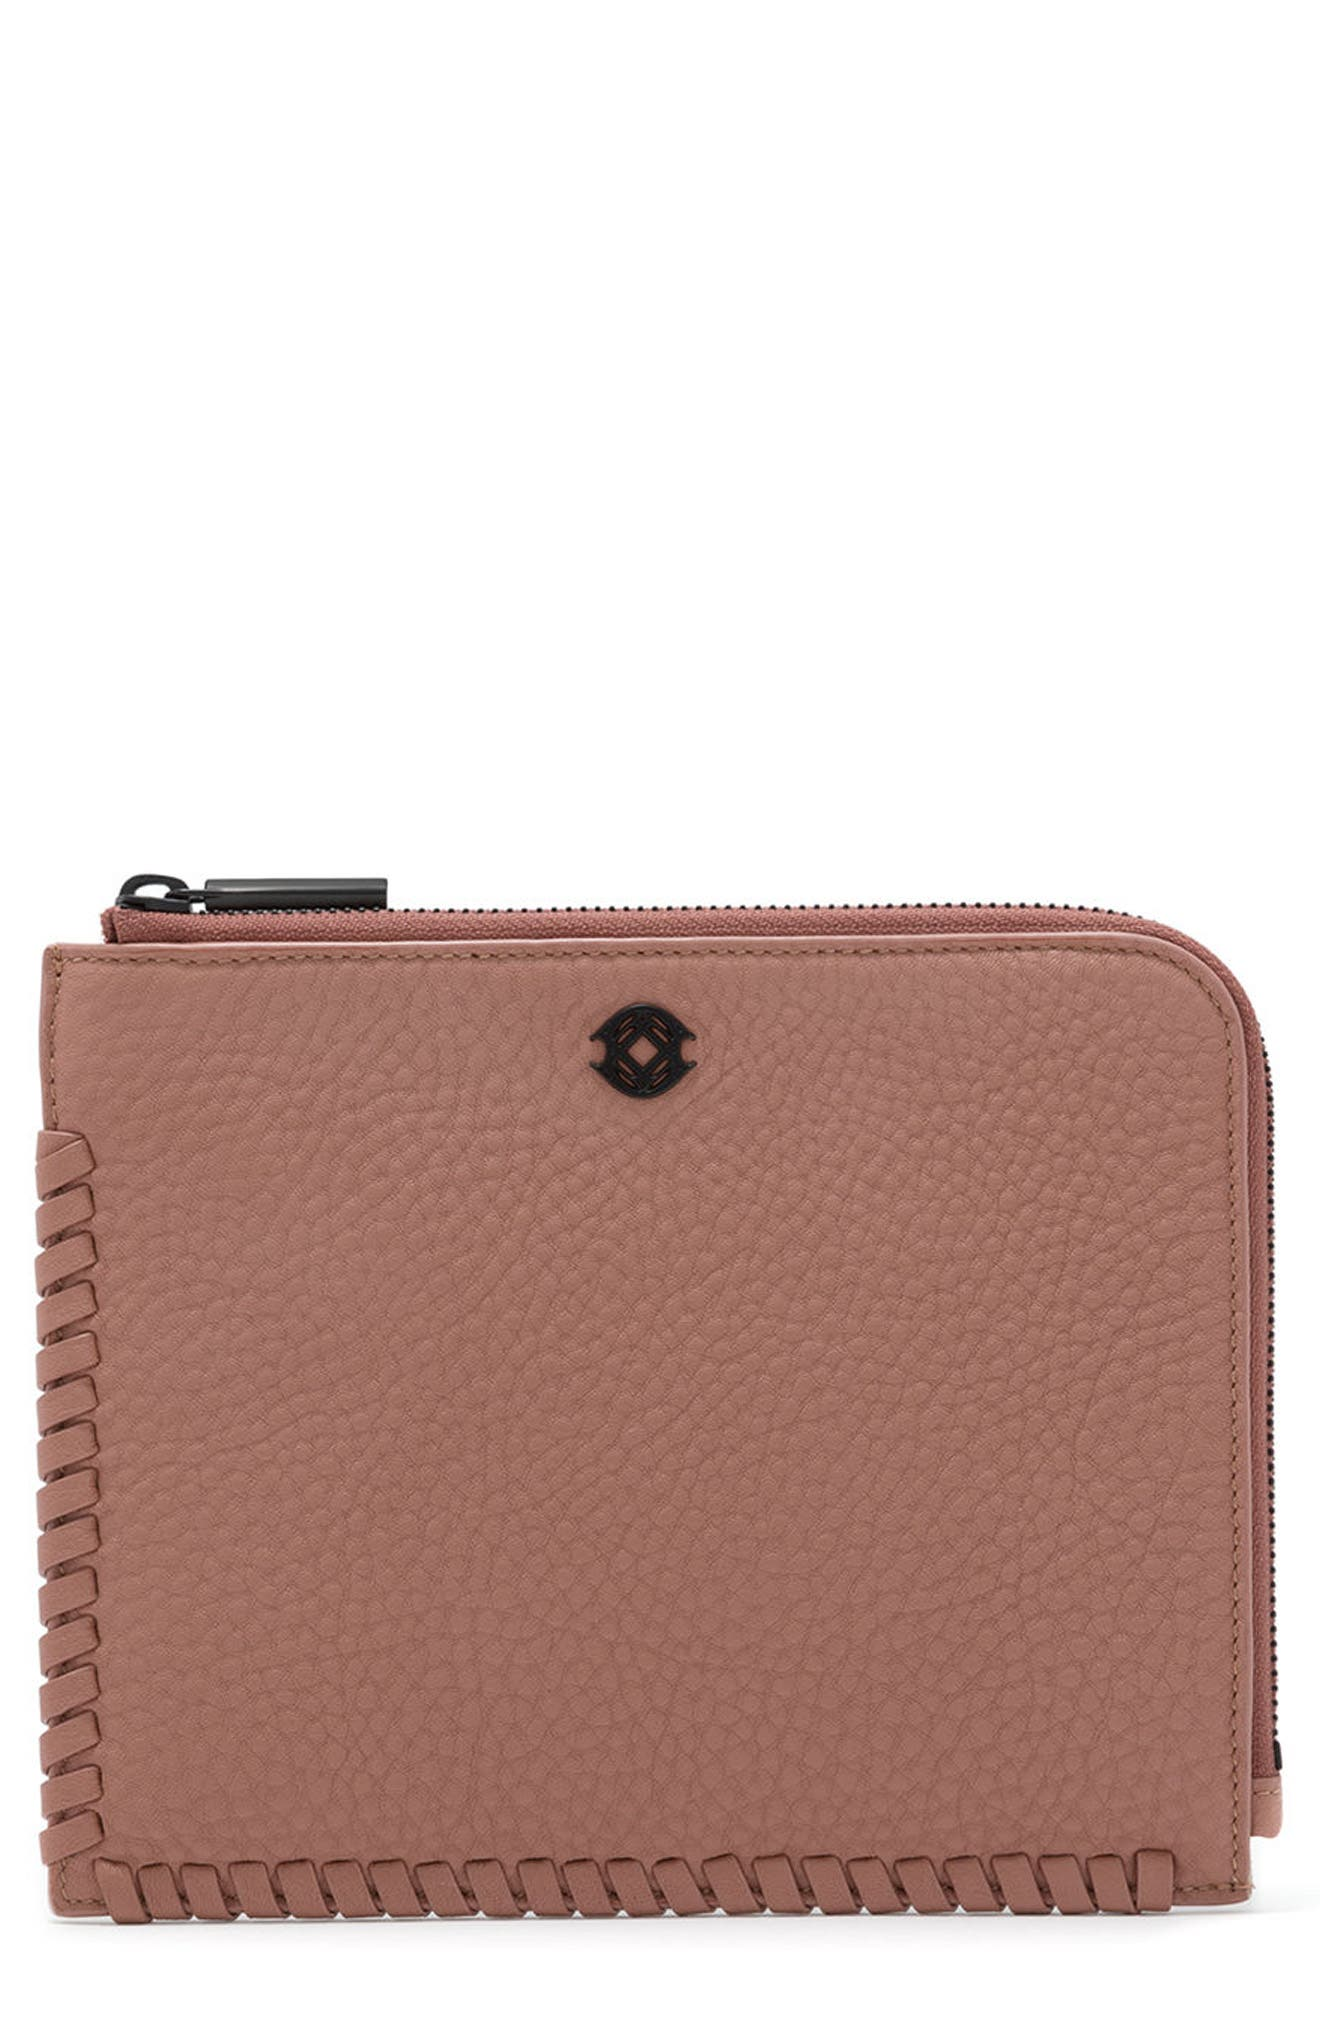 Small Elle Leather Clutch,                             Main thumbnail 6, color,